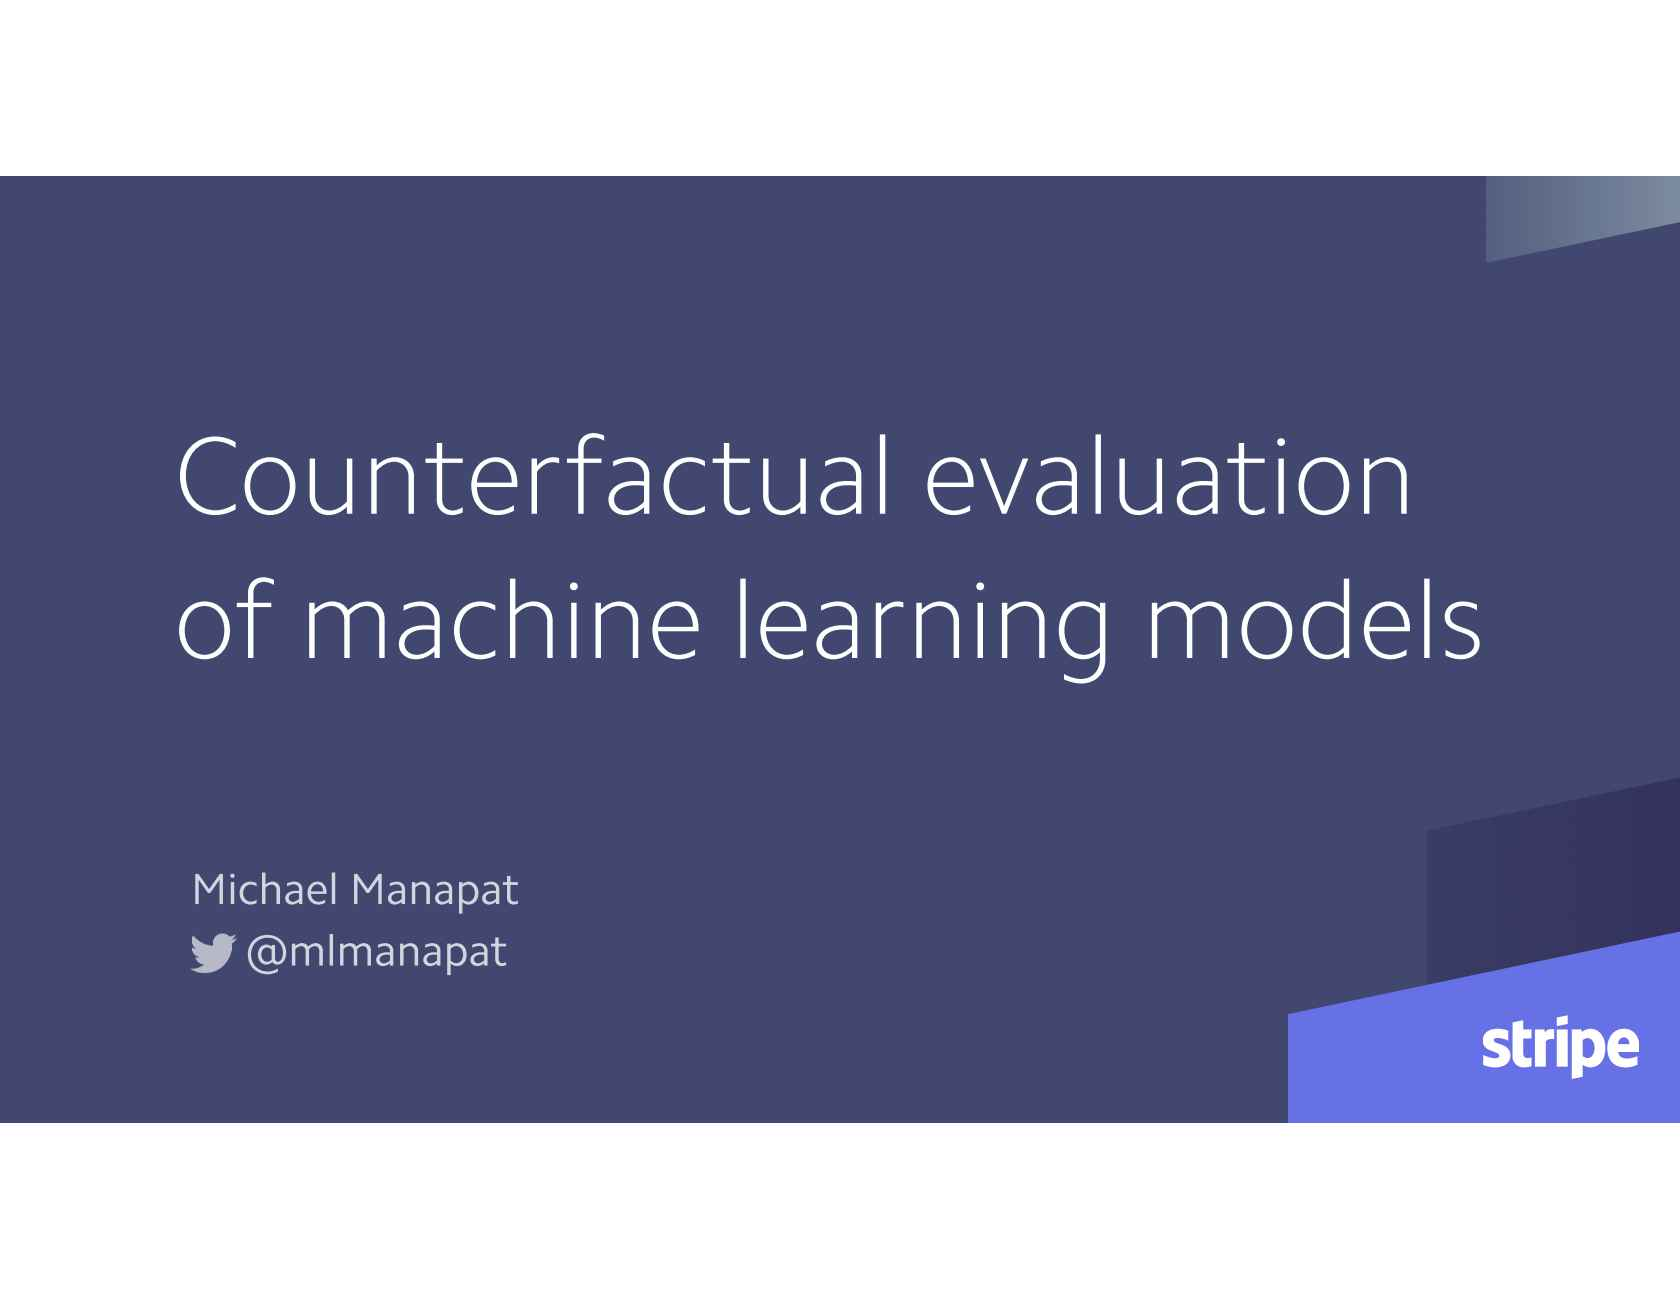 Counterfactual Evaluation of Machine Learning Models